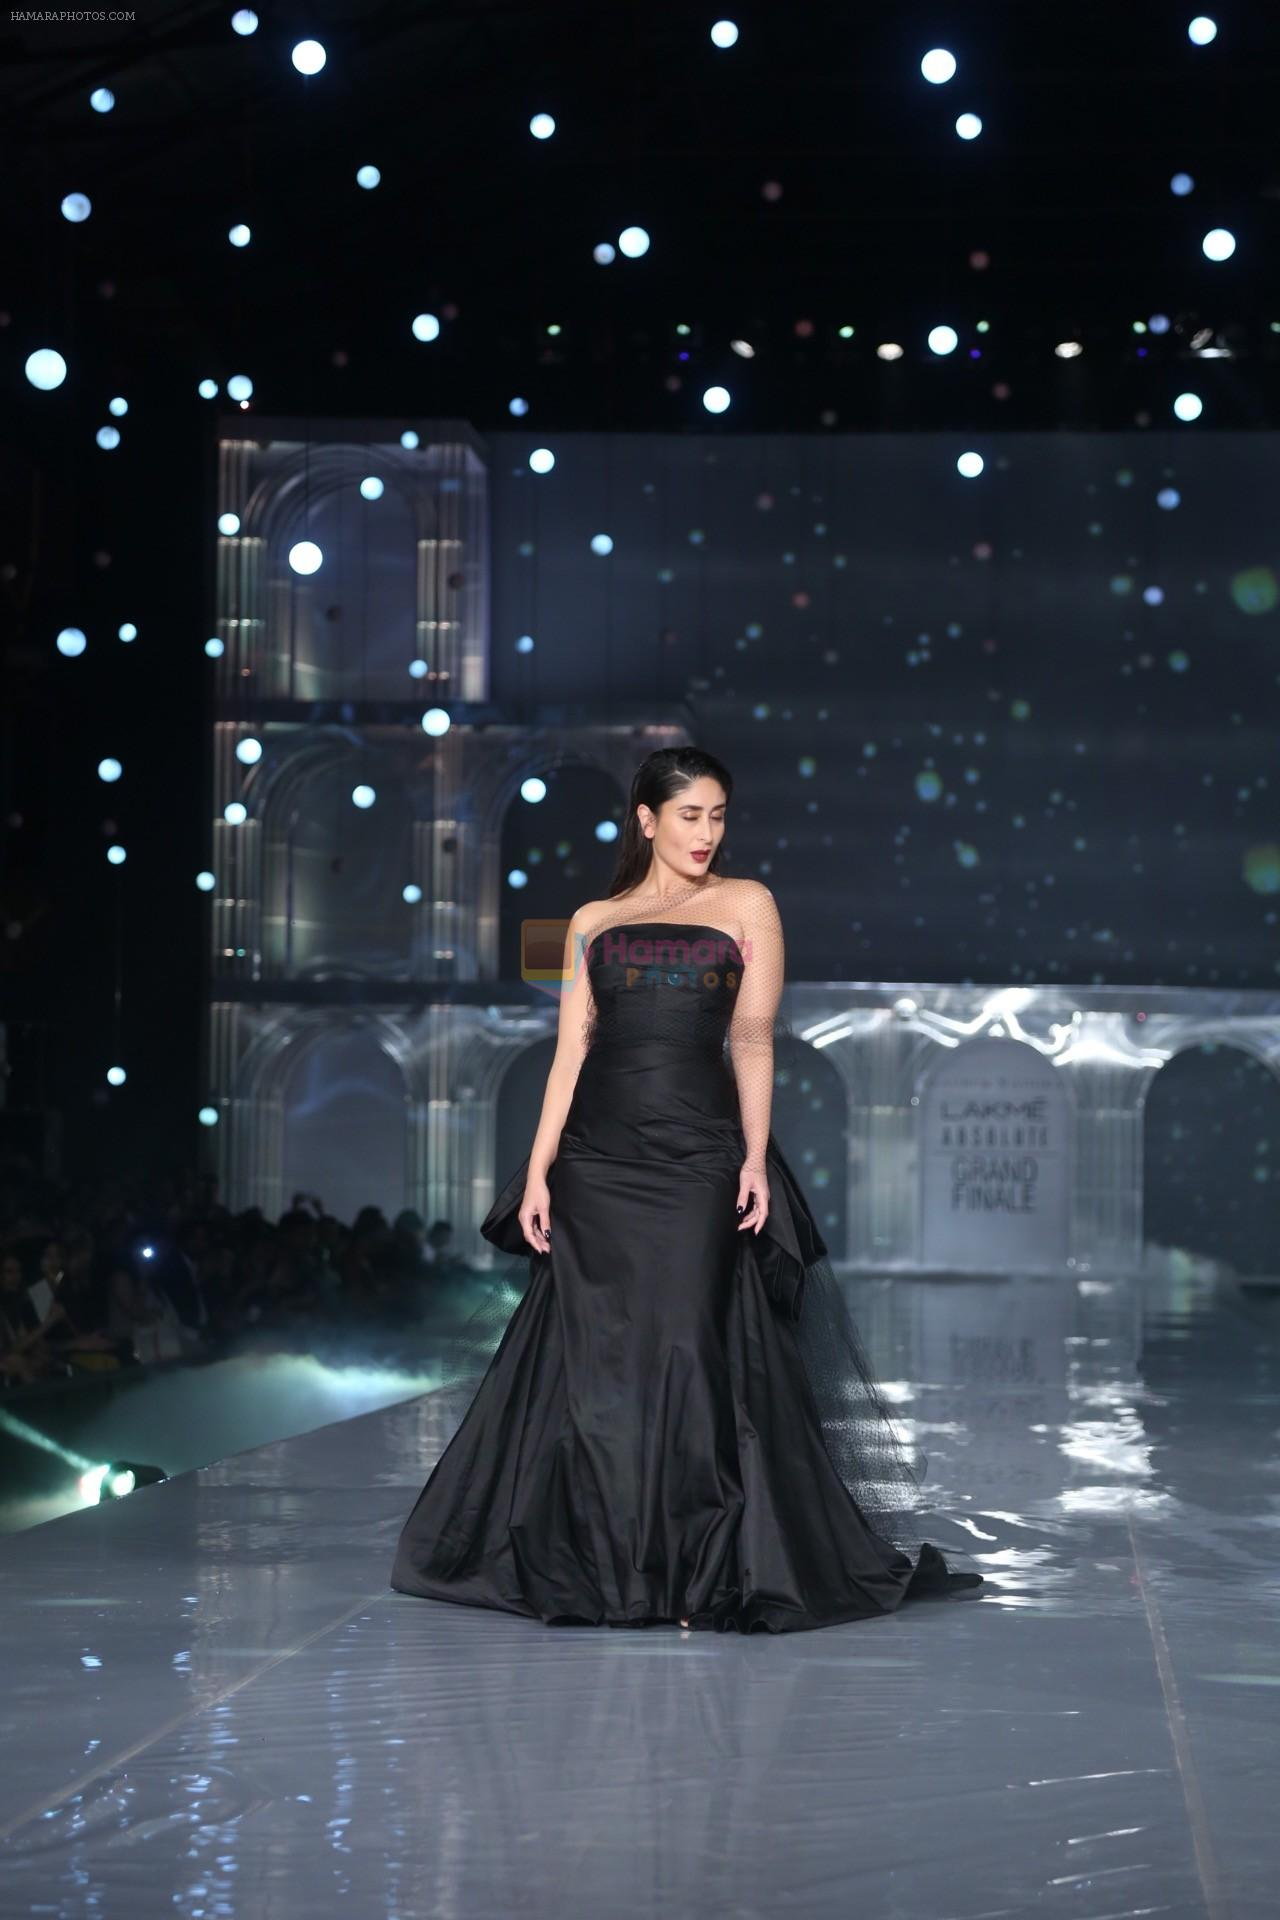 Kareena Kapoor Khan walks for Gauri & Nainika At Lakme Fashion Week 2019 on 25th Aug 2019